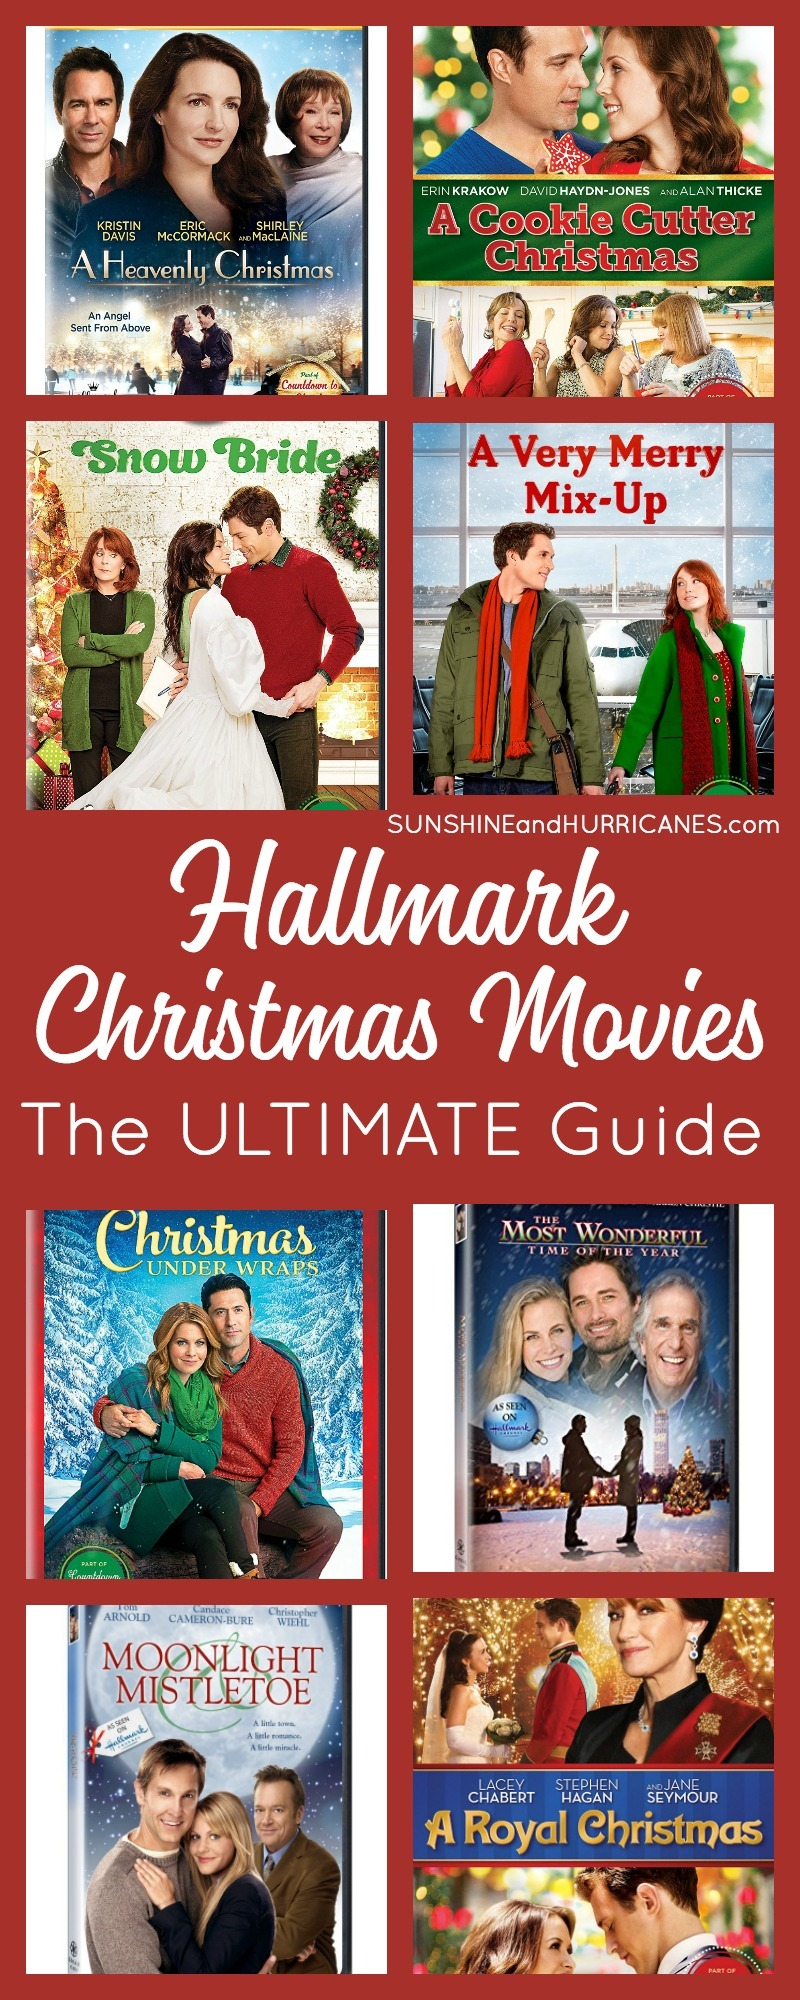 Hallmark Christmas Movies On You Christmas Cards